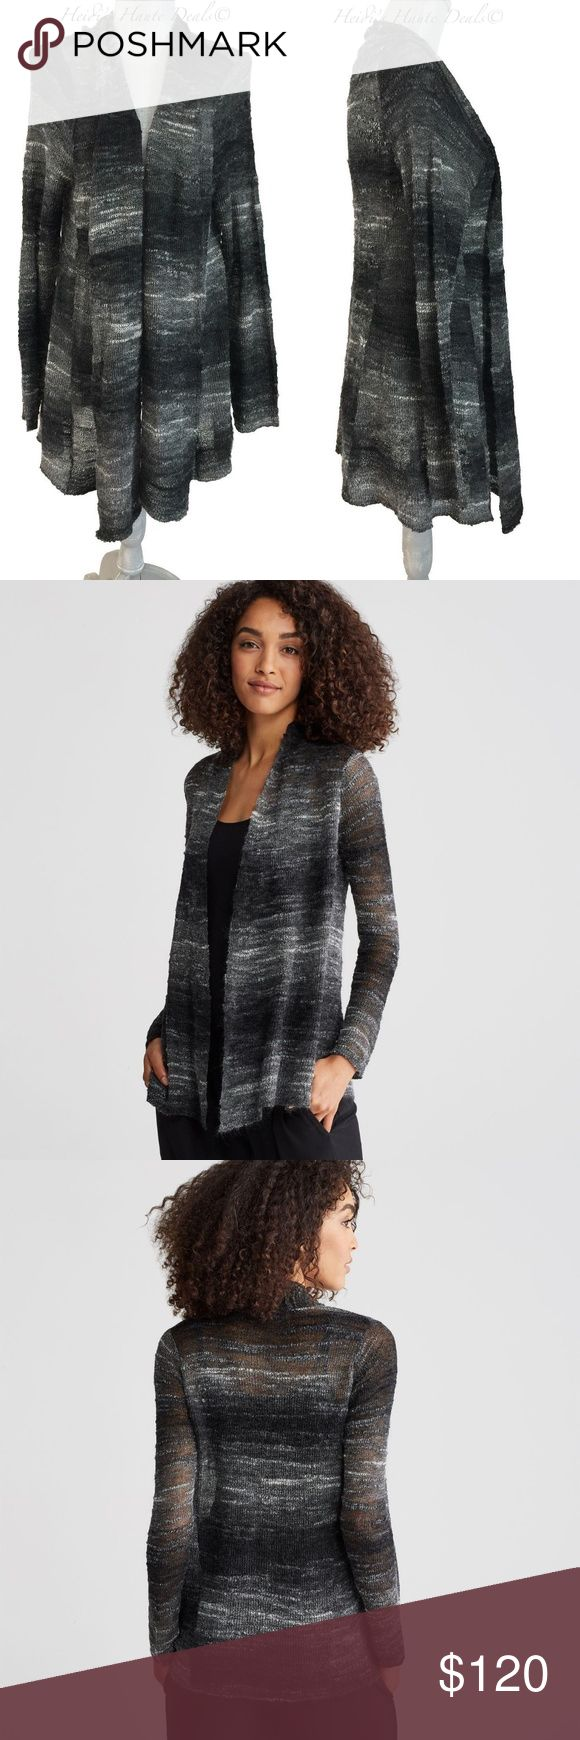 "EILEEN FISHER Black Mohair Wool Draped Cardigan L Eileen Fisher Cardigan Sweater - No Trades Size L - So Pretty!  • Authentic! • New with tags $298.00 • Bust 46"" • Length 29.5"" • Nylon/mohair/wool • Semi sheer • Ash - black/gray/white • Ombre knit pattern • Draped shawl collar • Open front • Decorative safety pin included • Long sleeves • Long length • Un-lined Eileen Fisher Sweaters Cardigans"